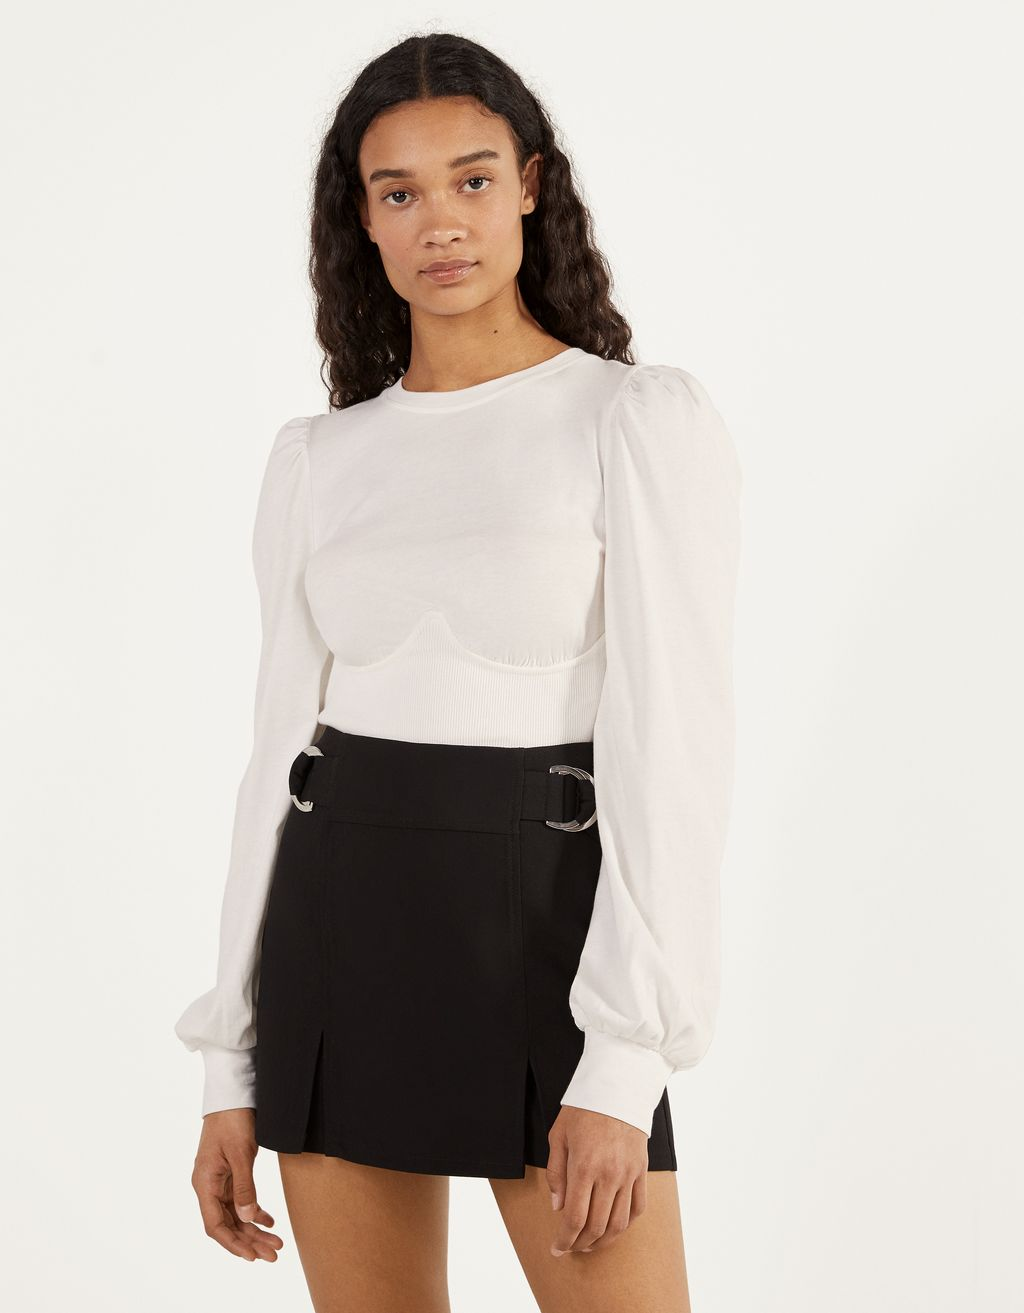 Corset-style top with puff sleeve